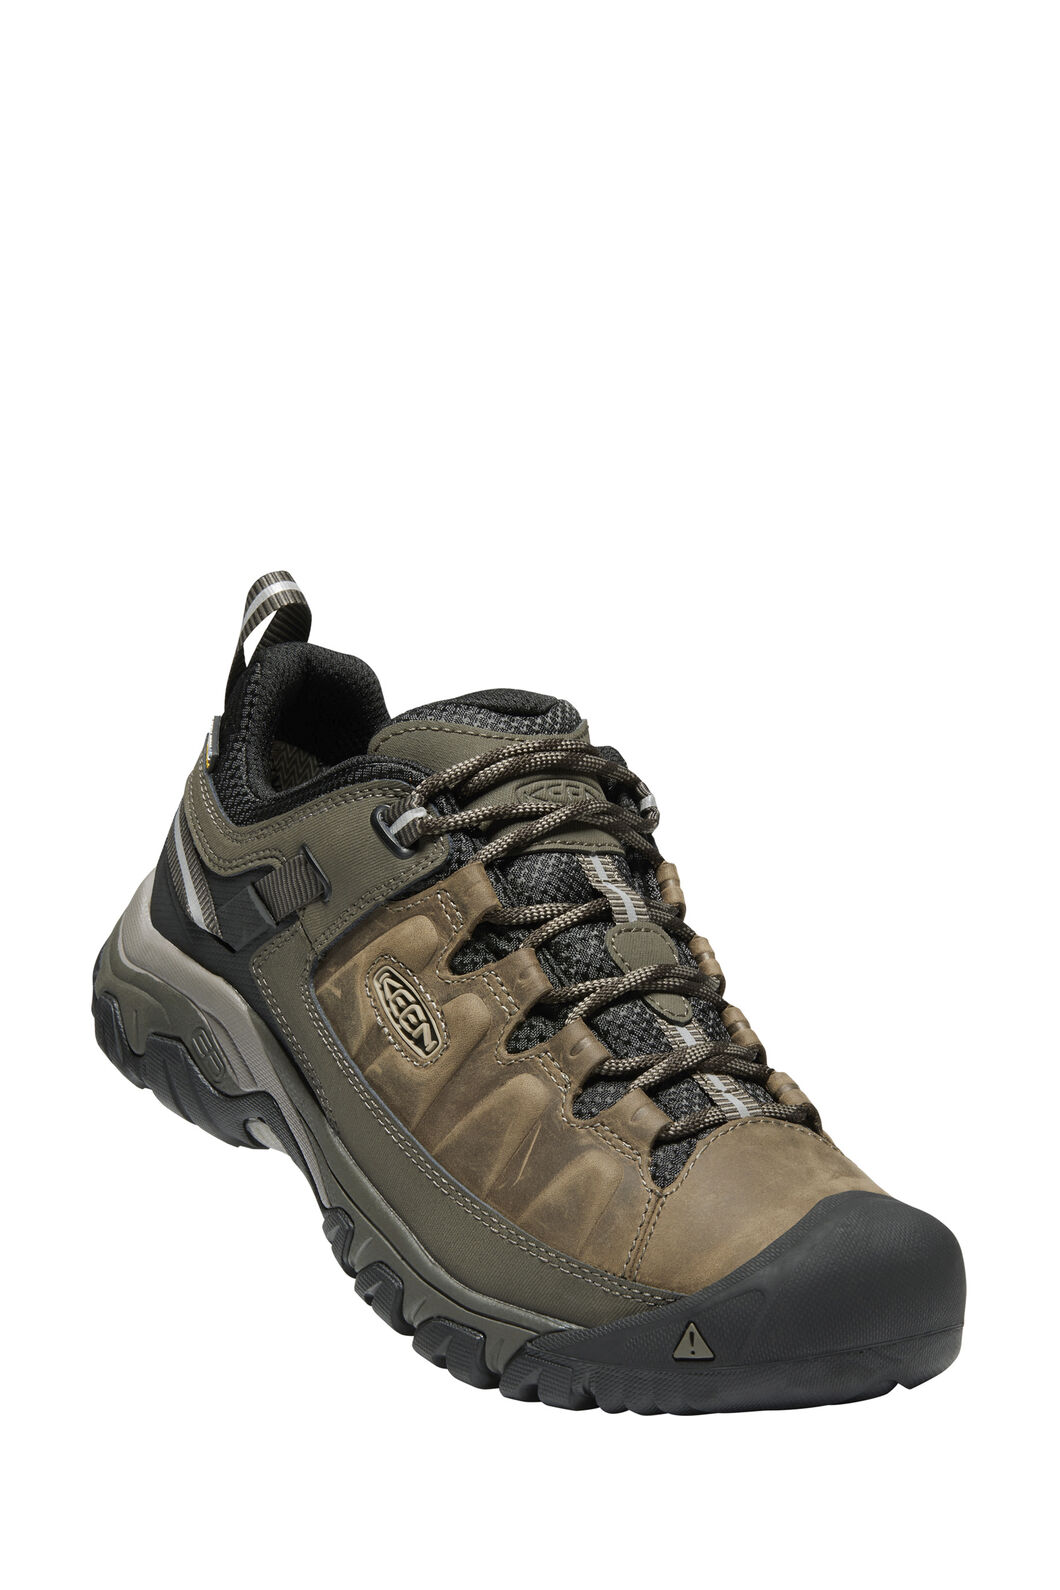 Keen Targhee III WP Hiking Shoes — Men's, Bungee Cord/Black, hi-res